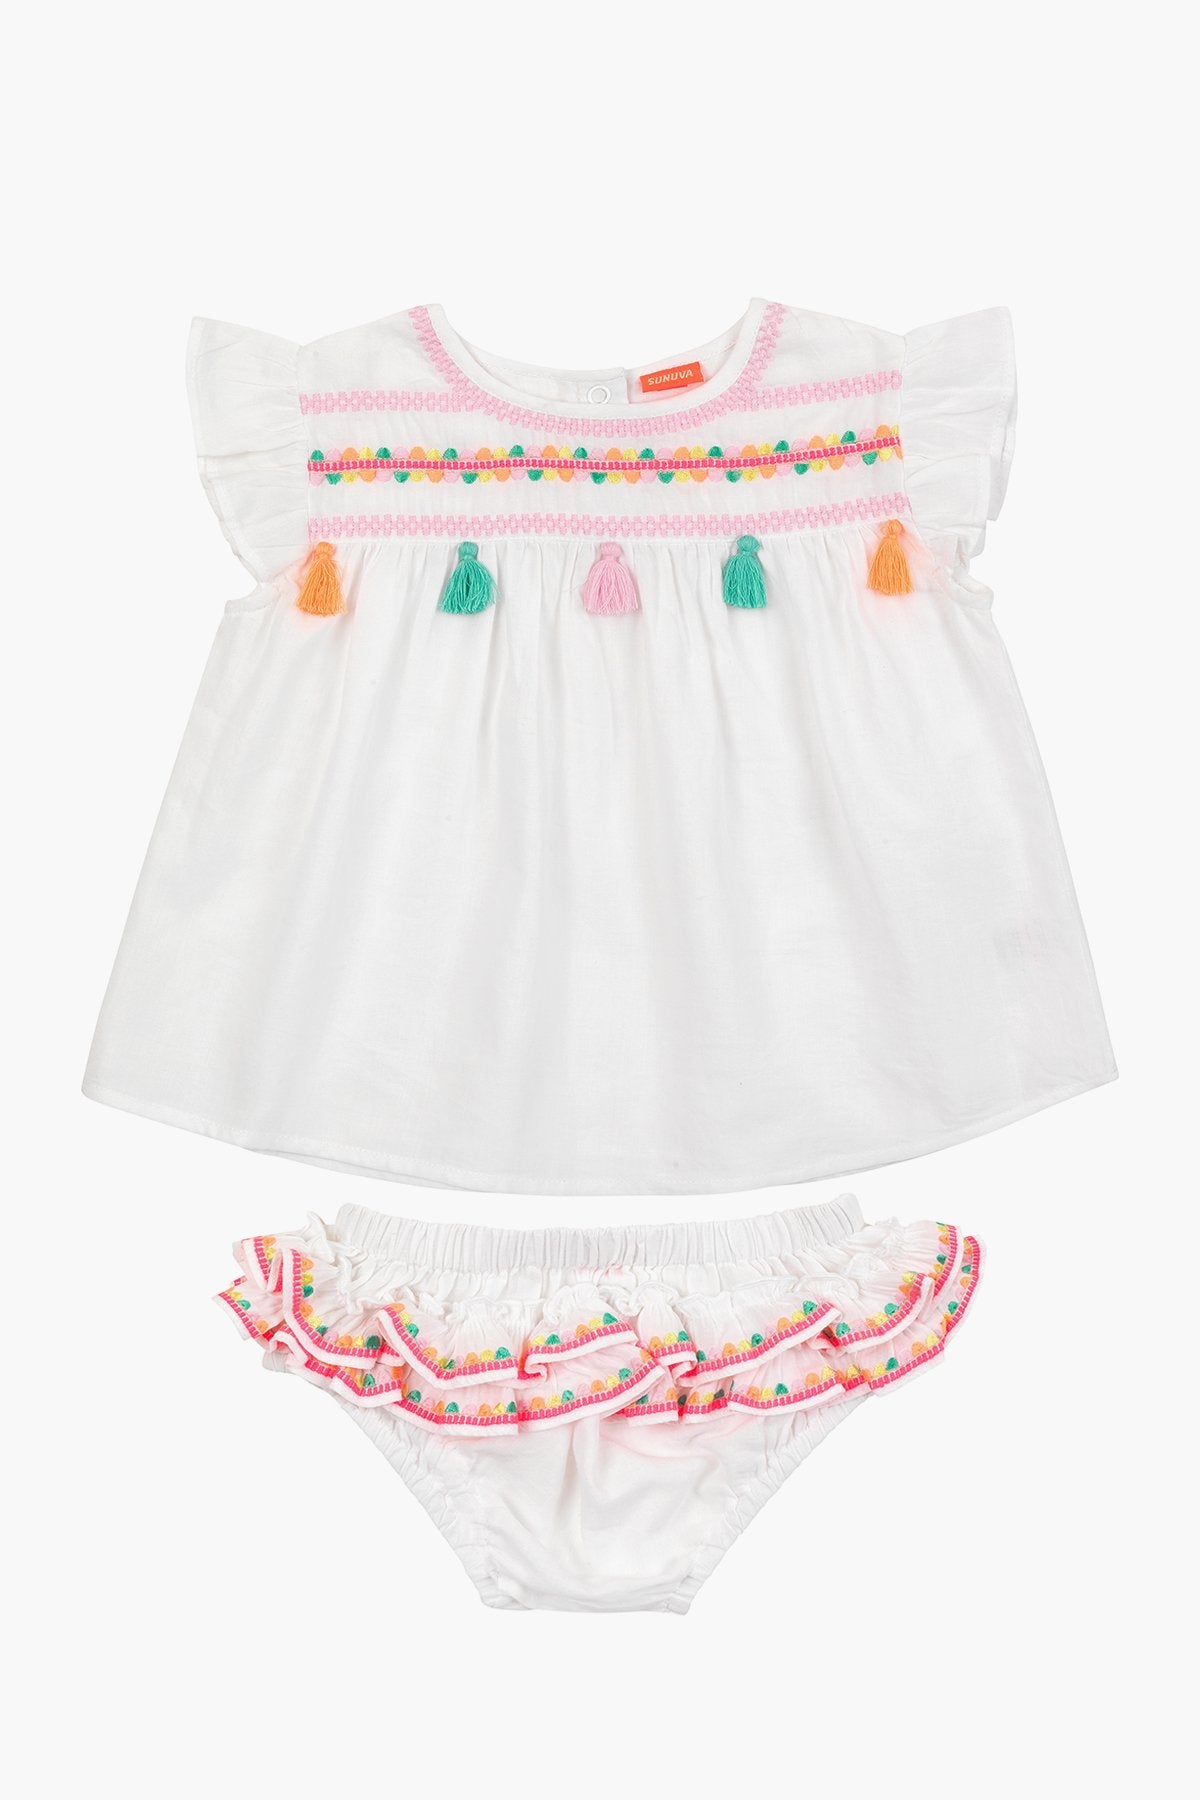 Sunuva Embroidered Baby Girls Set